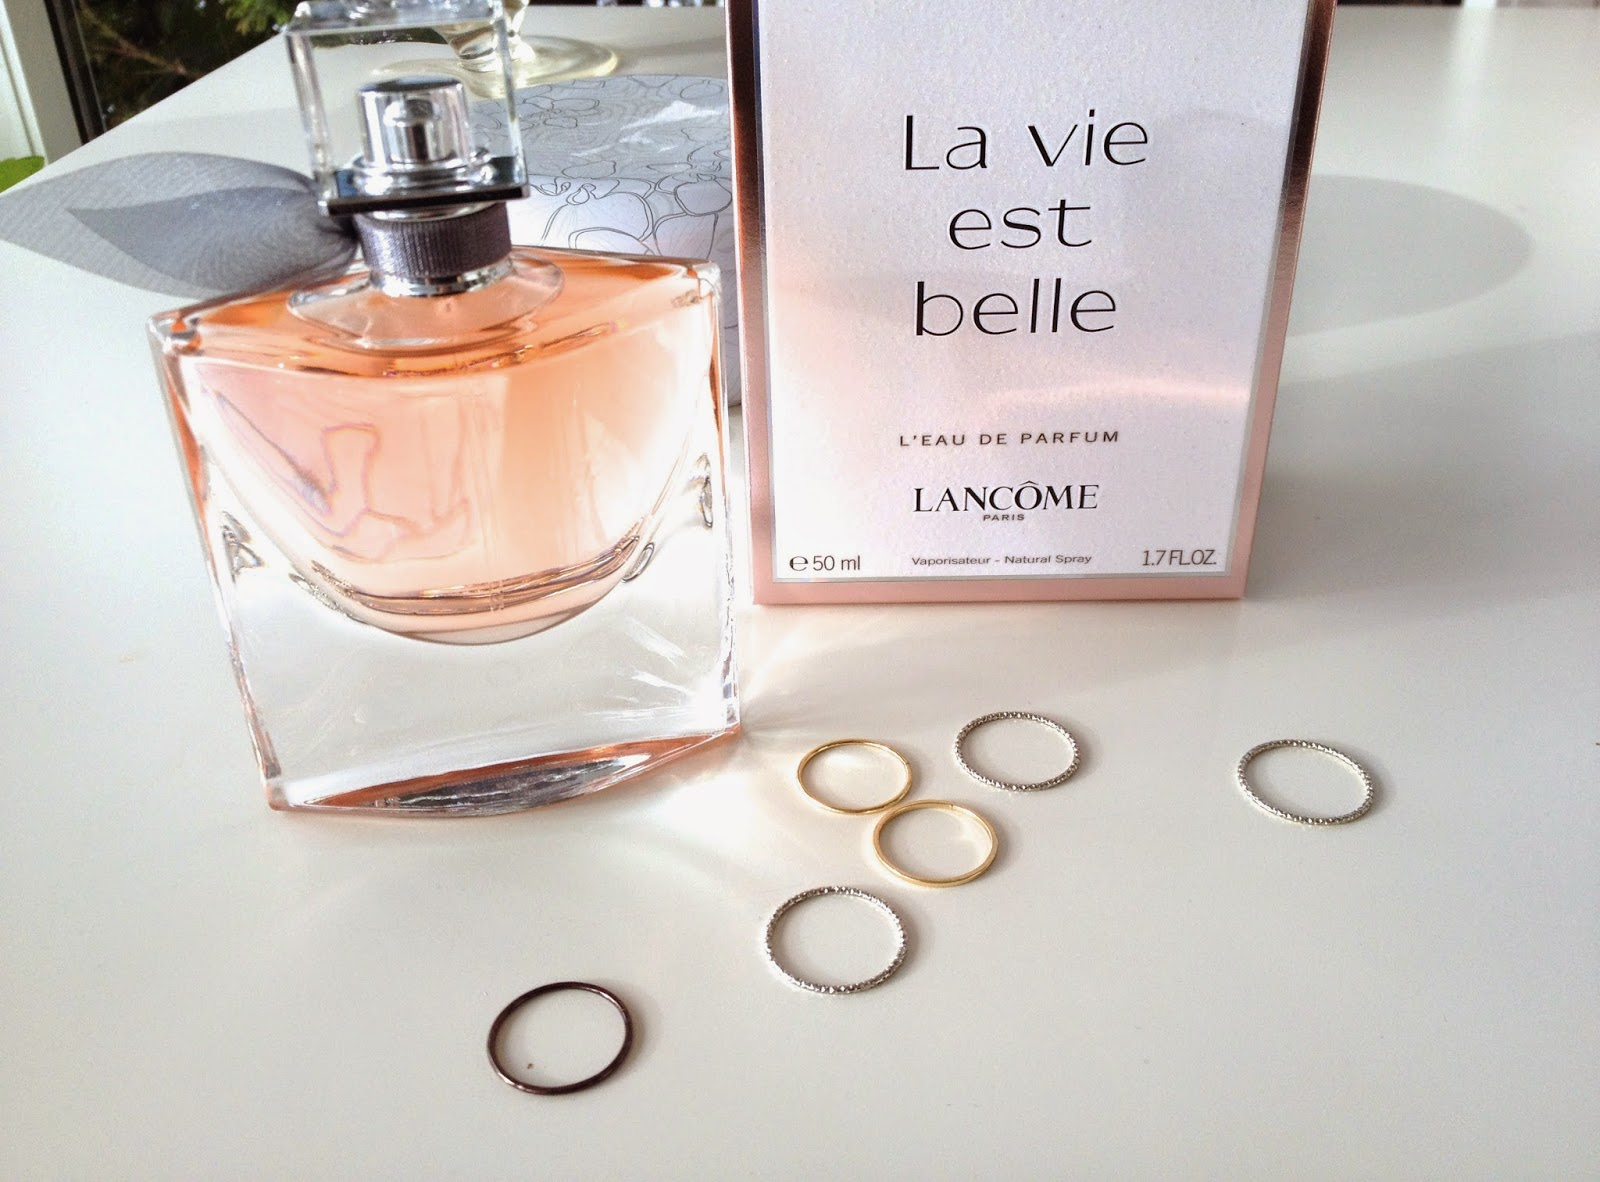 La Vie Perfume Belle Lancôme ReviewChristine's And Beauty Est hdrstQ